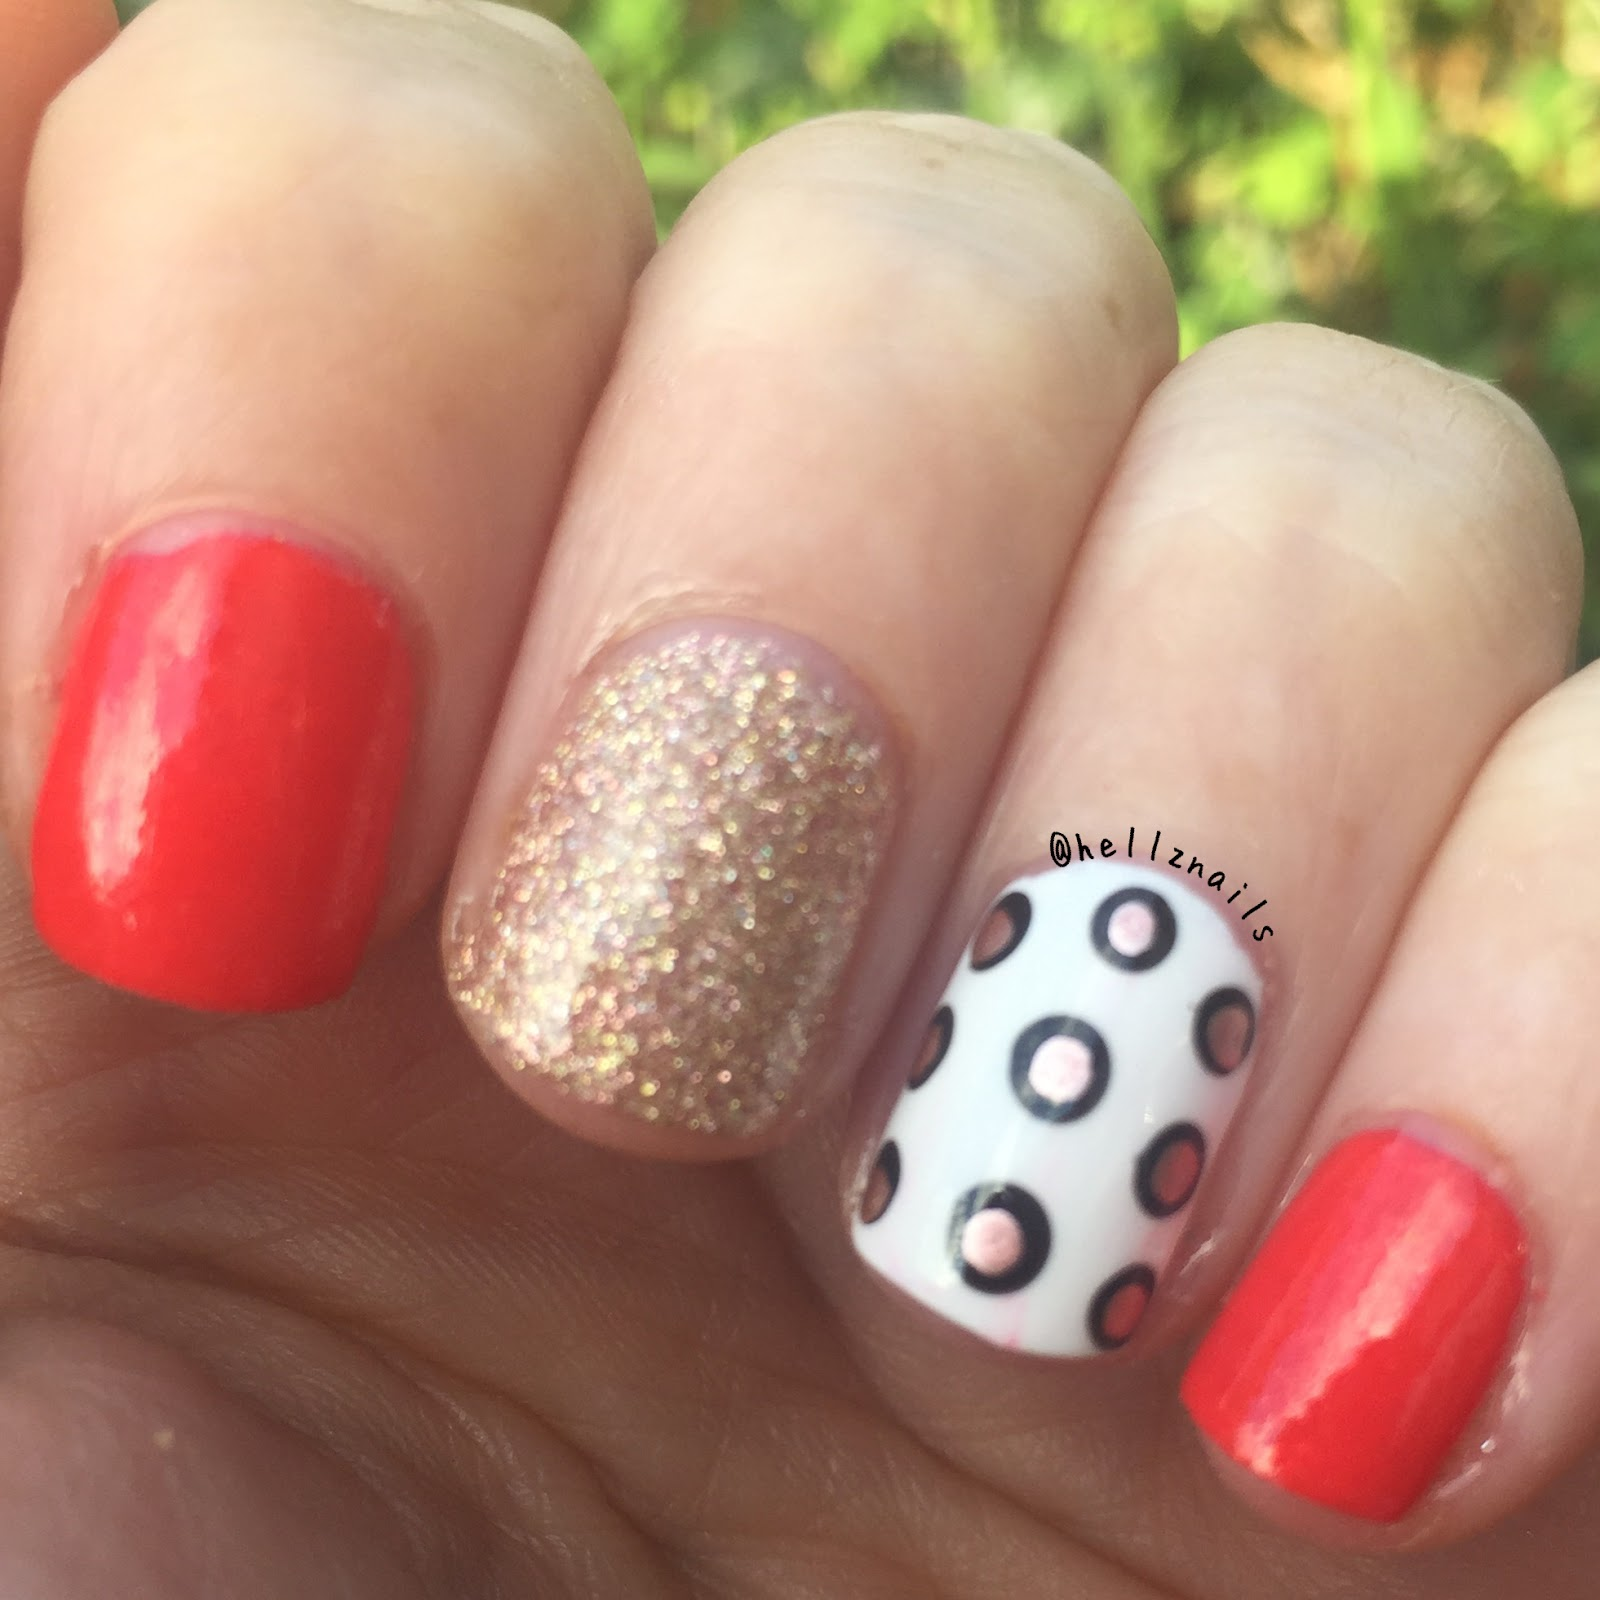 Summer skittlette polka dot nail art hellz nails dotticure skittlette nail art models own carat coral gosh frosted gold china glaze prinsesfo Gallery